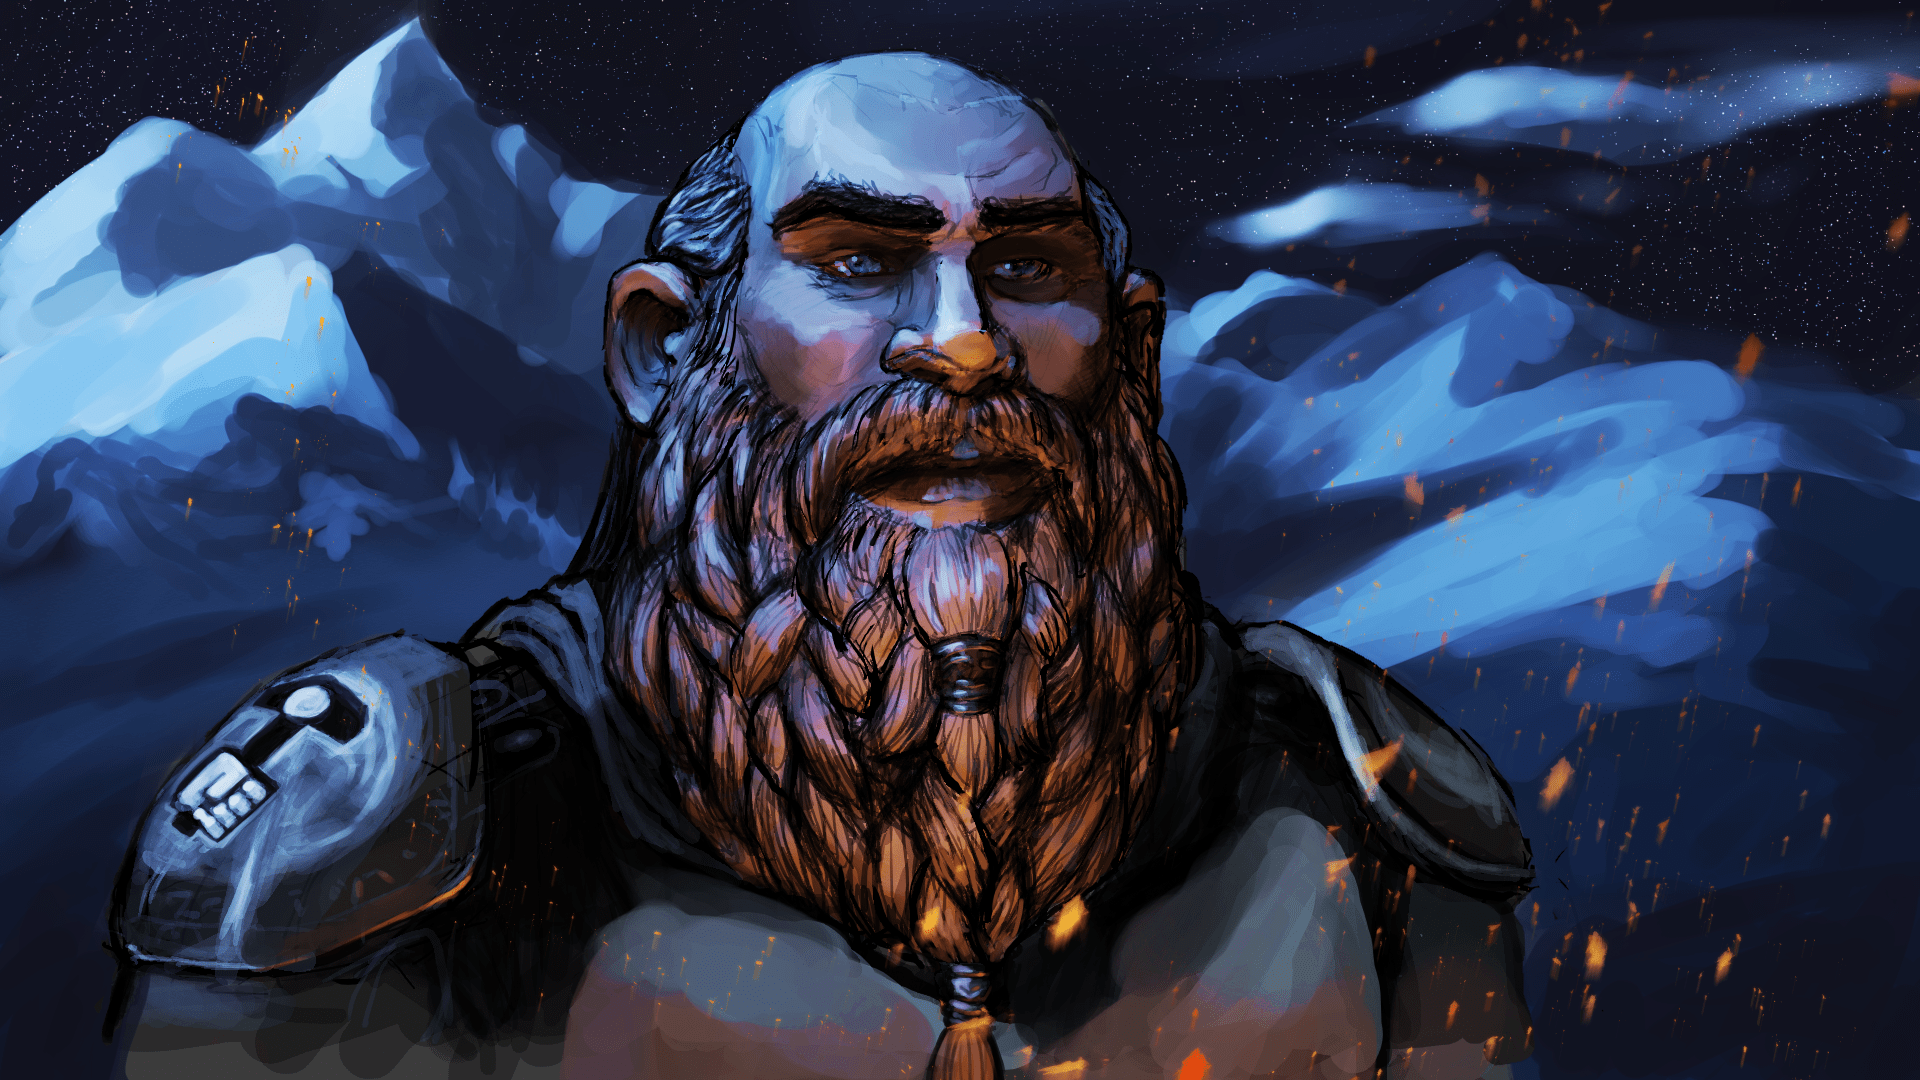 Clayrick Dwarven Cleric Illustration with overpaint by Darren Kearney